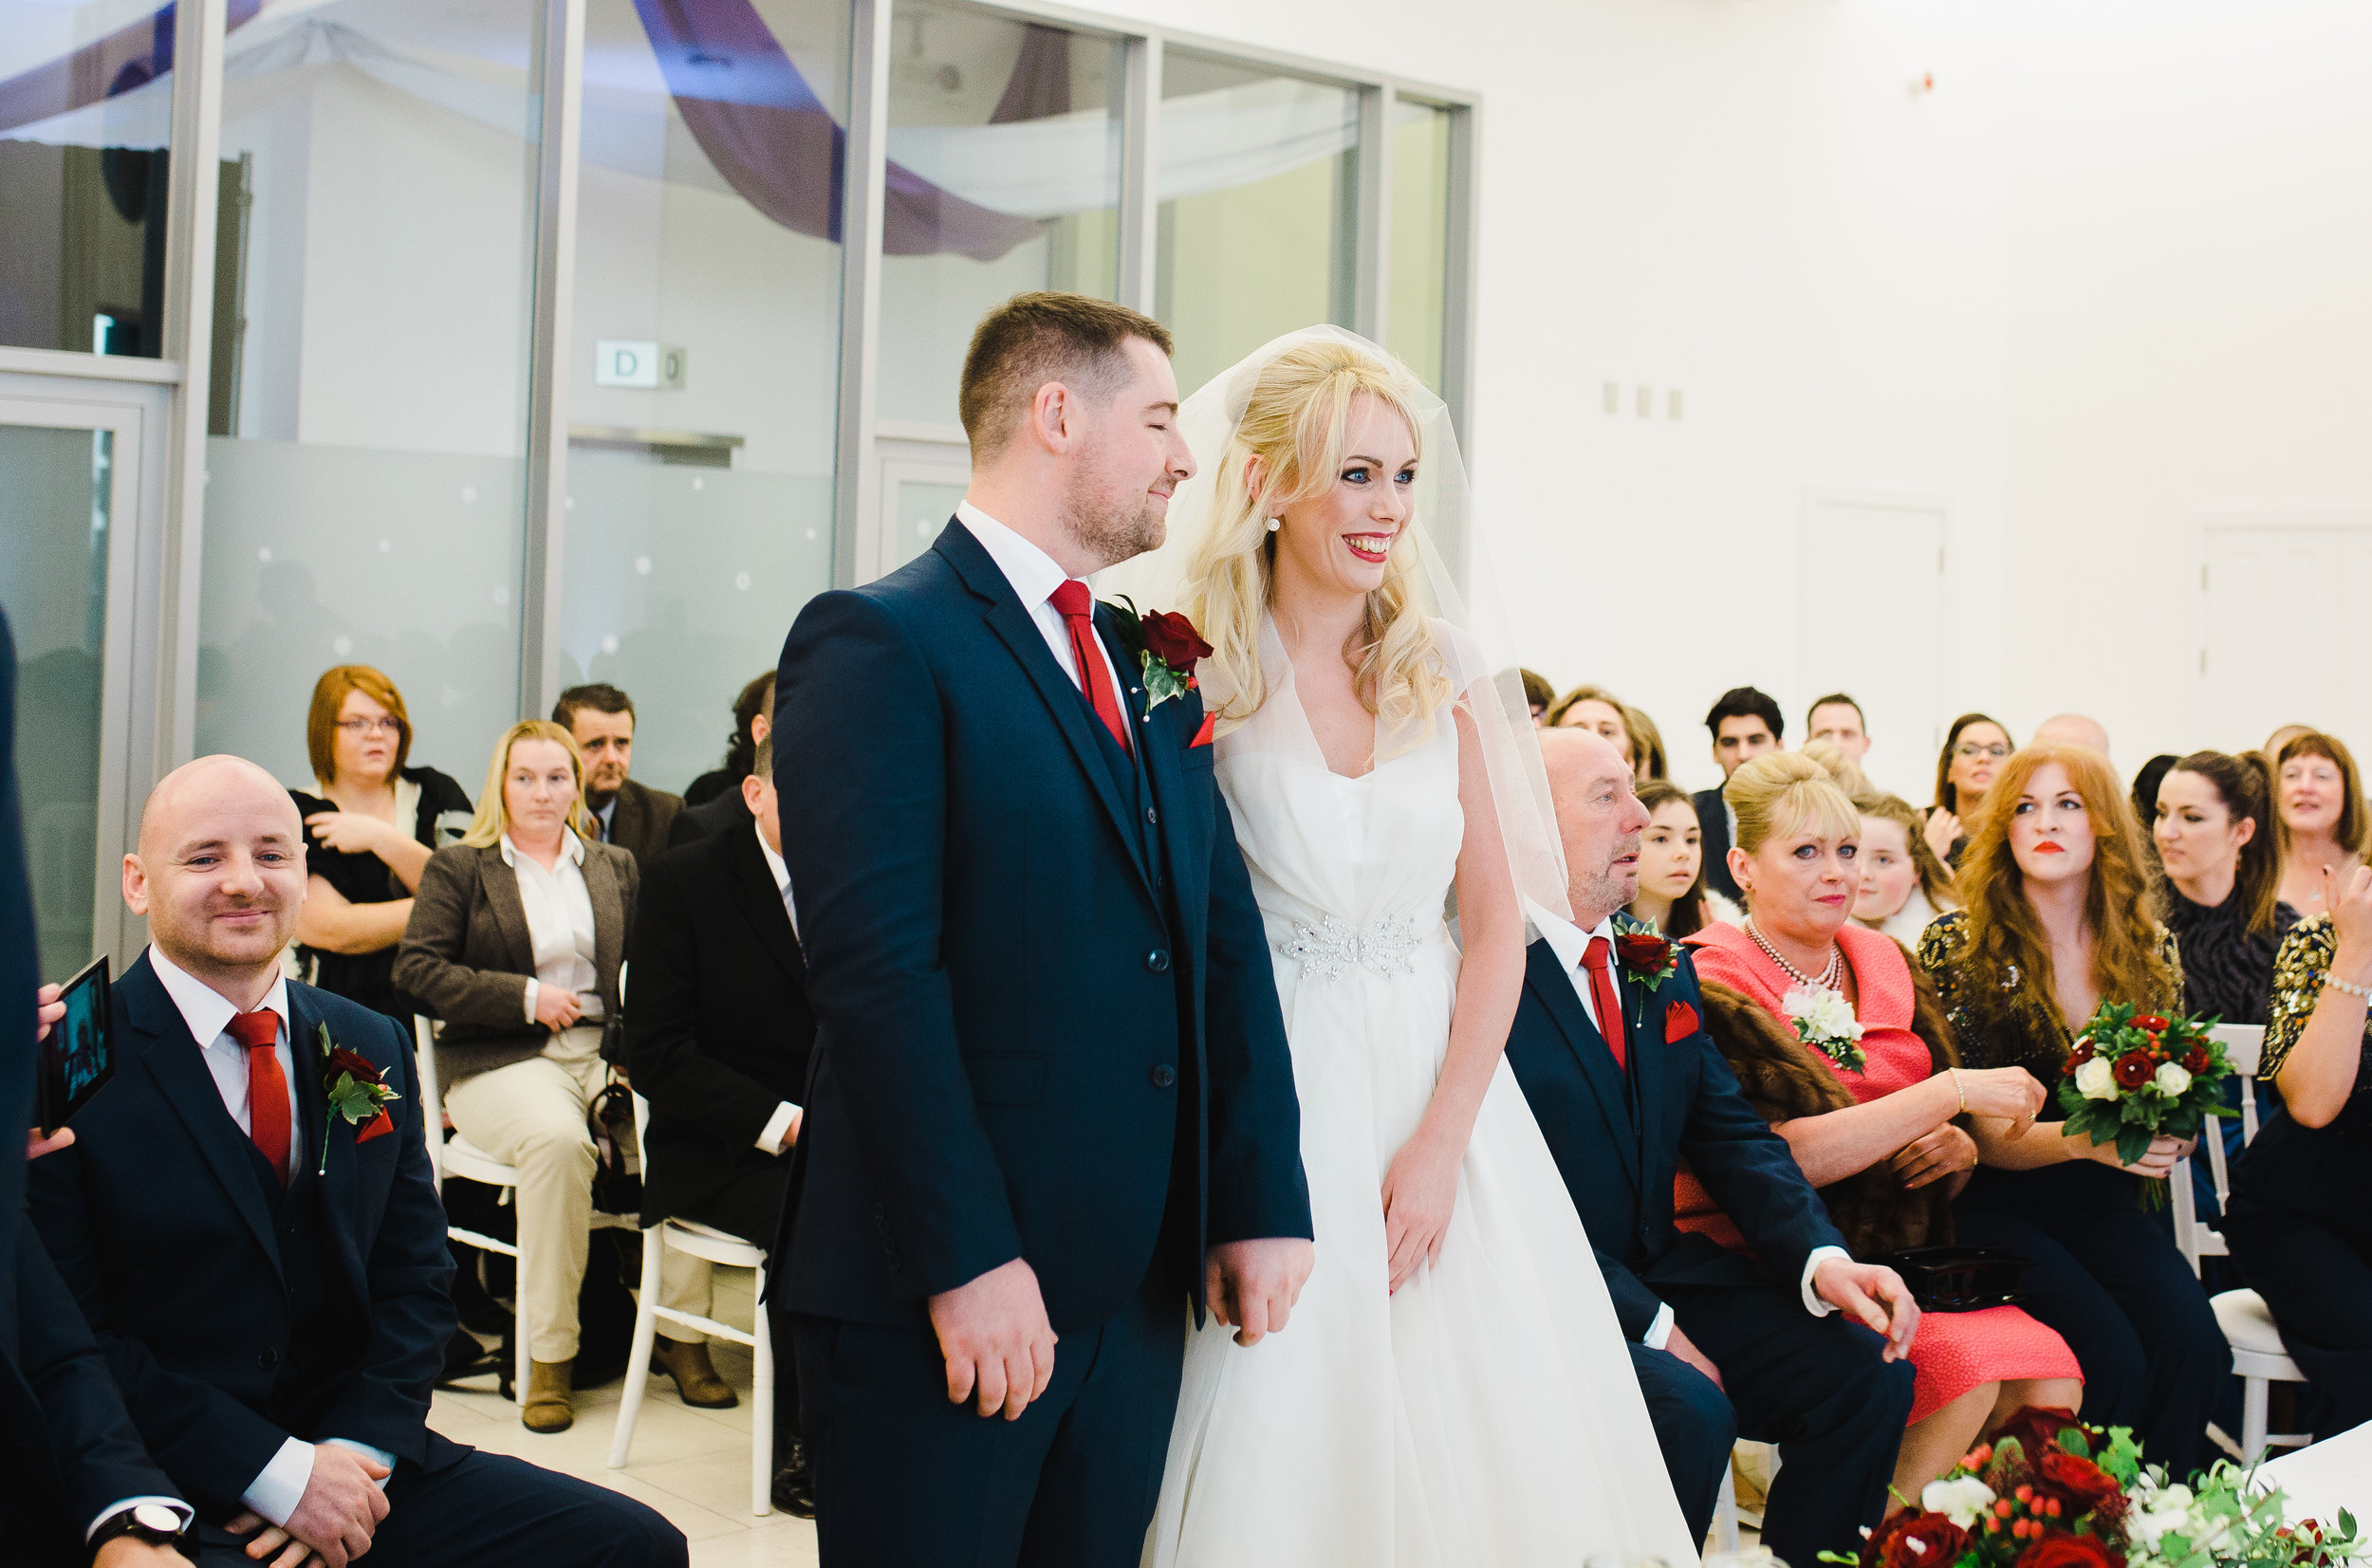 wedding ceremony at the Liver Building